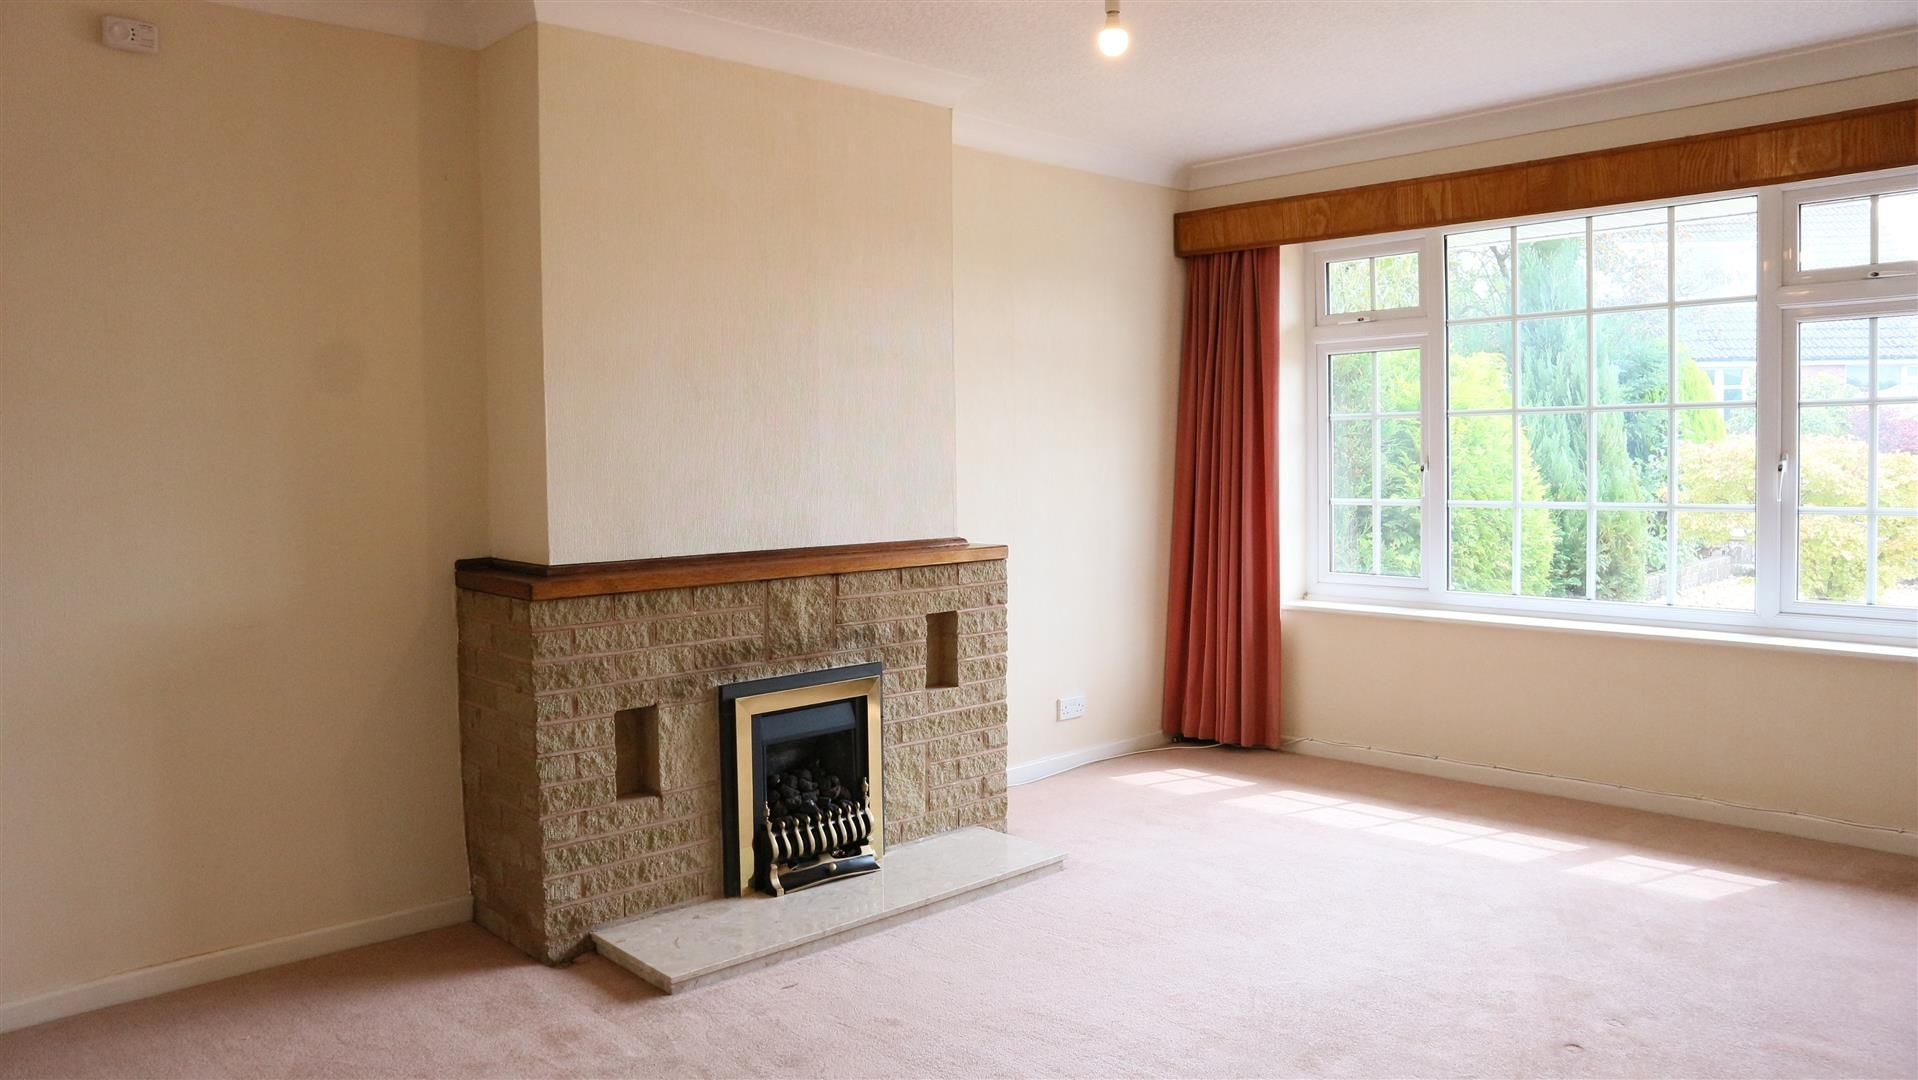 3 bed semi-detached for sale in Norton 3